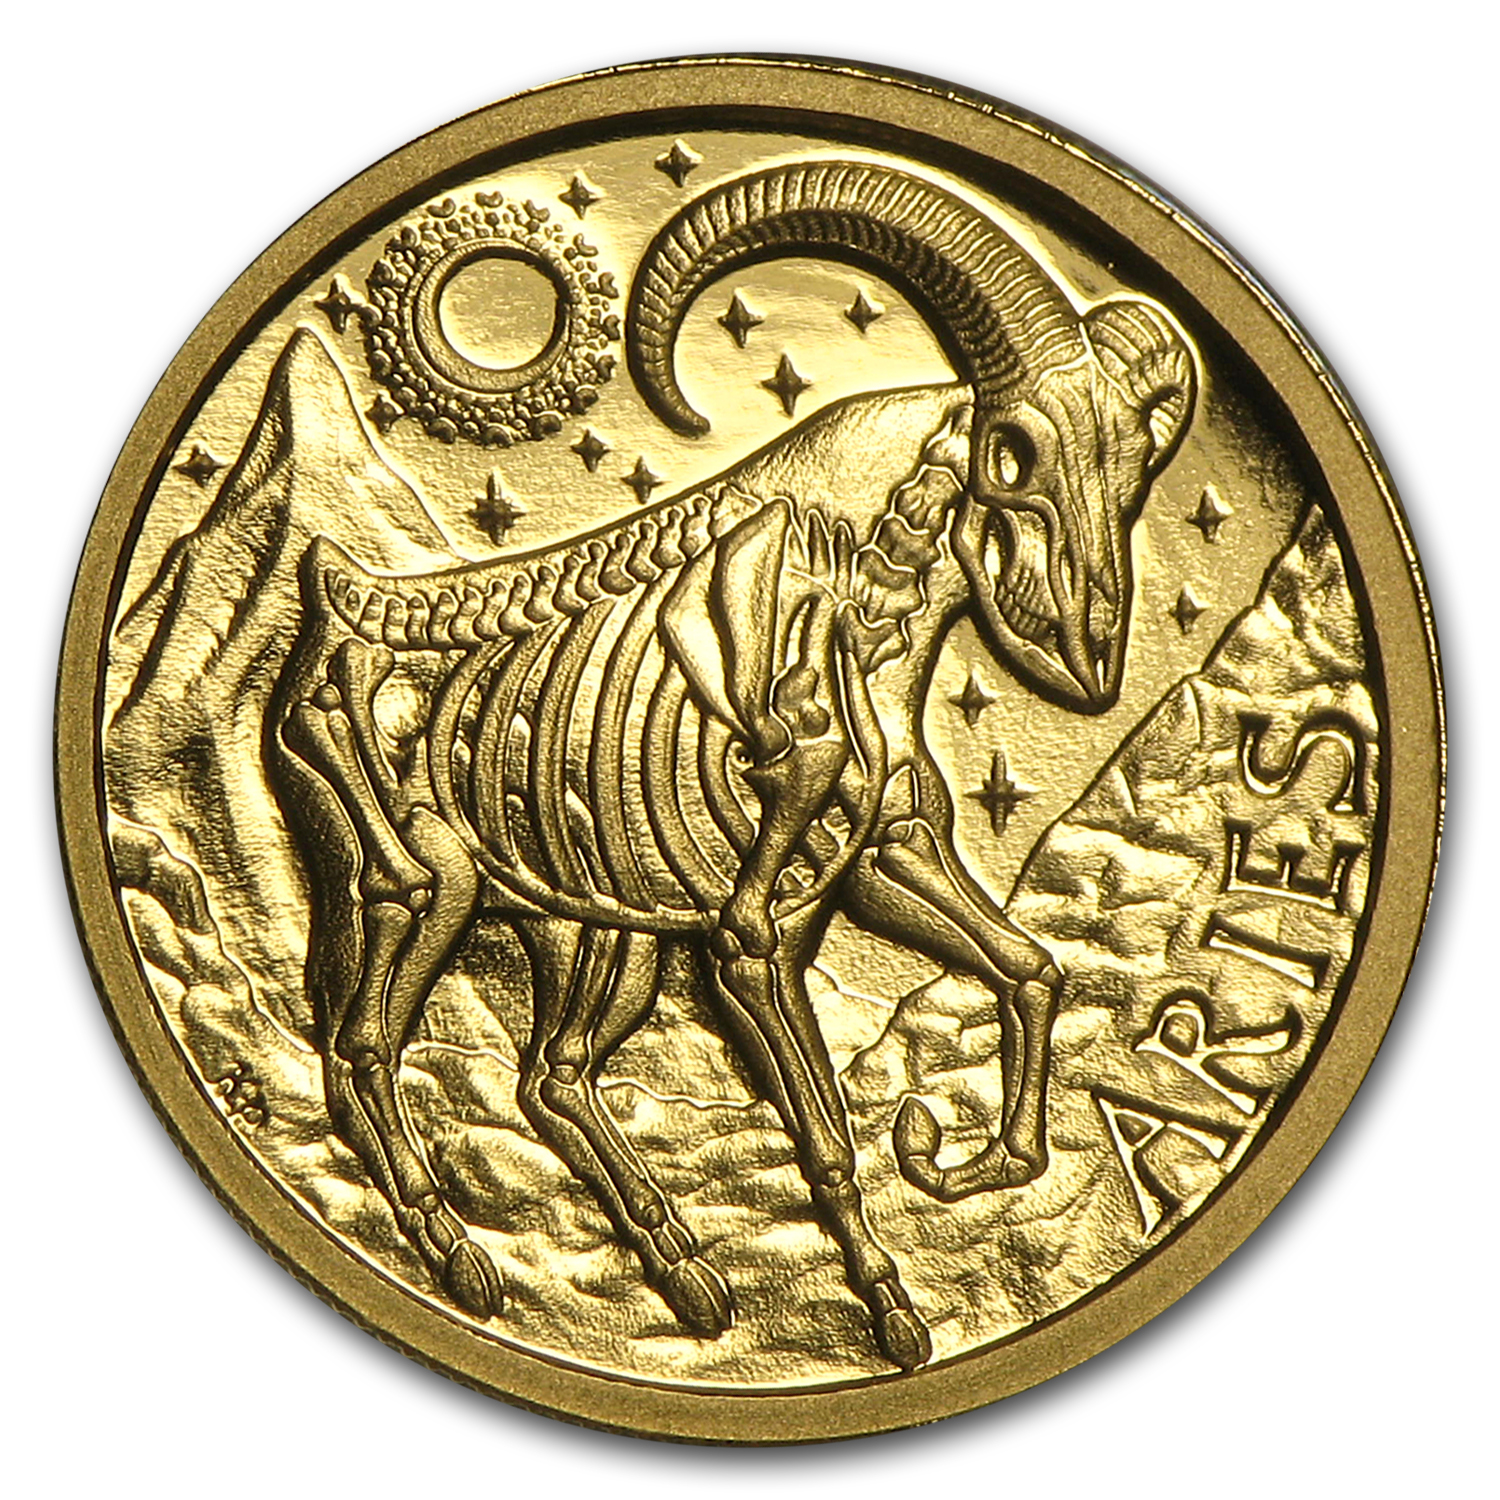 1/10 oz Gold Proof Round - Zodiac Skull Series (Aries)